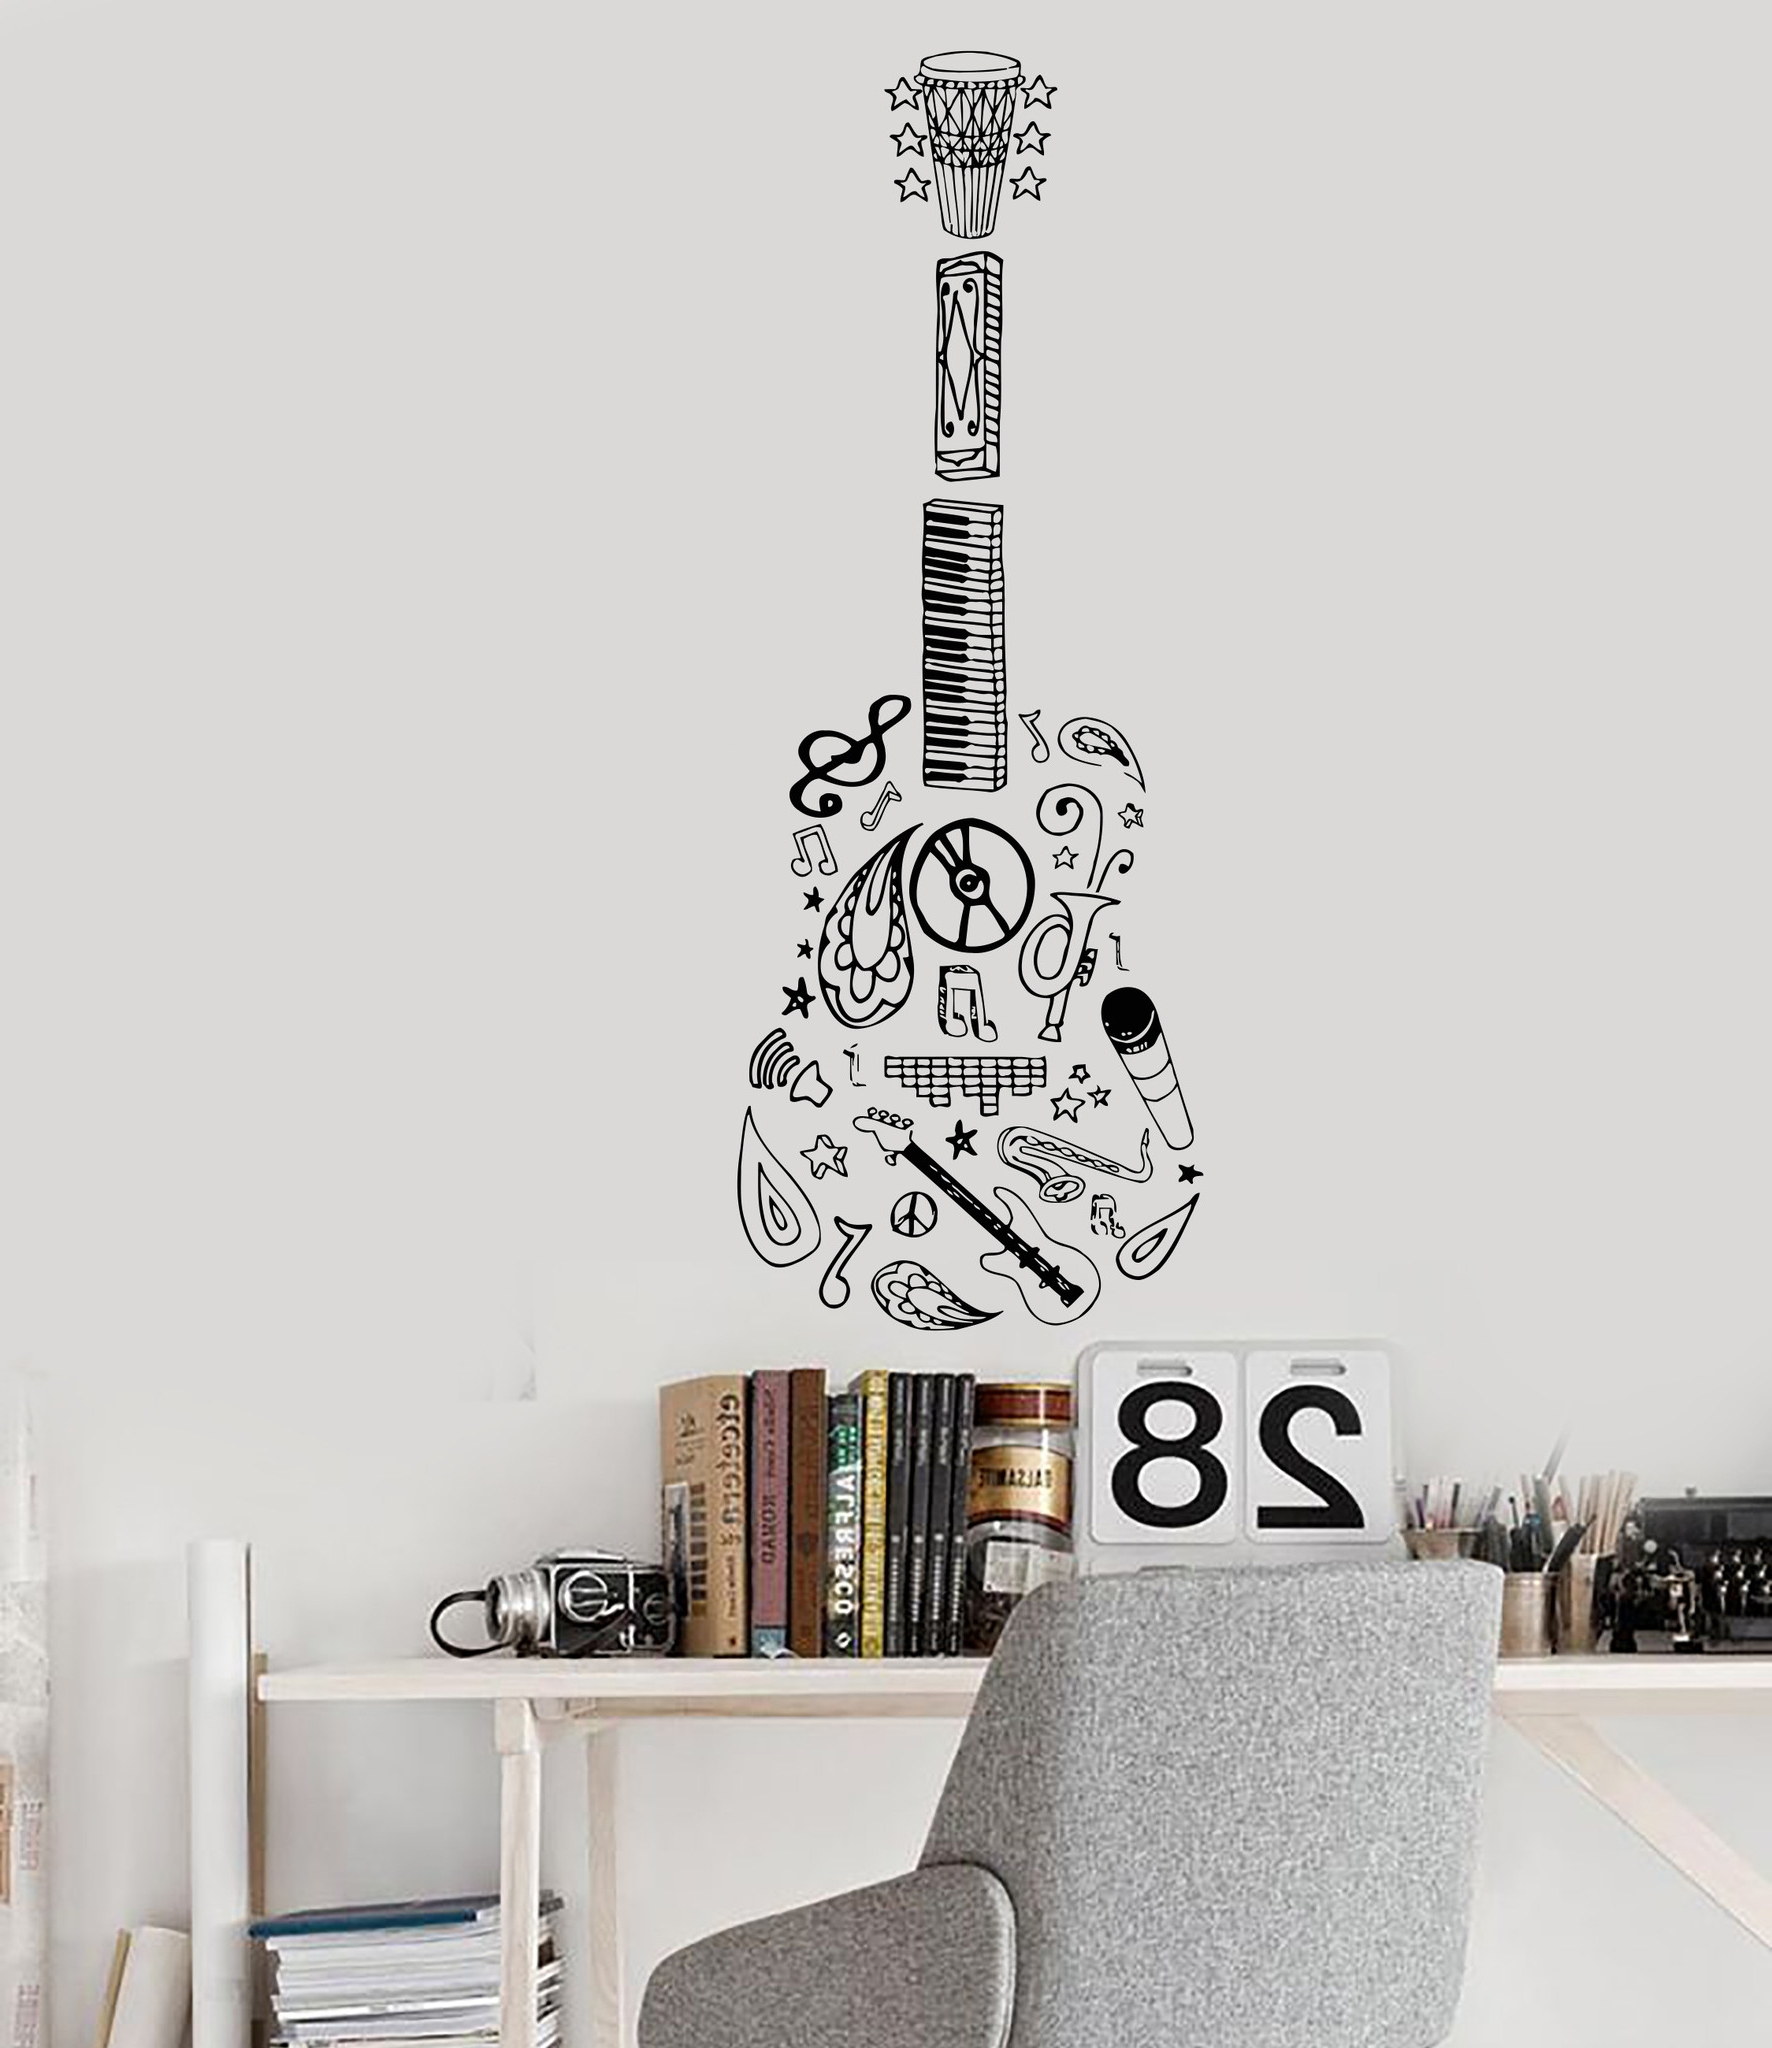 Vinyl Wall Decal Guitar Music Musical Instrument Decor Sketch With 2017 Musical Instrument Wall Art (Gallery 1 of 15)